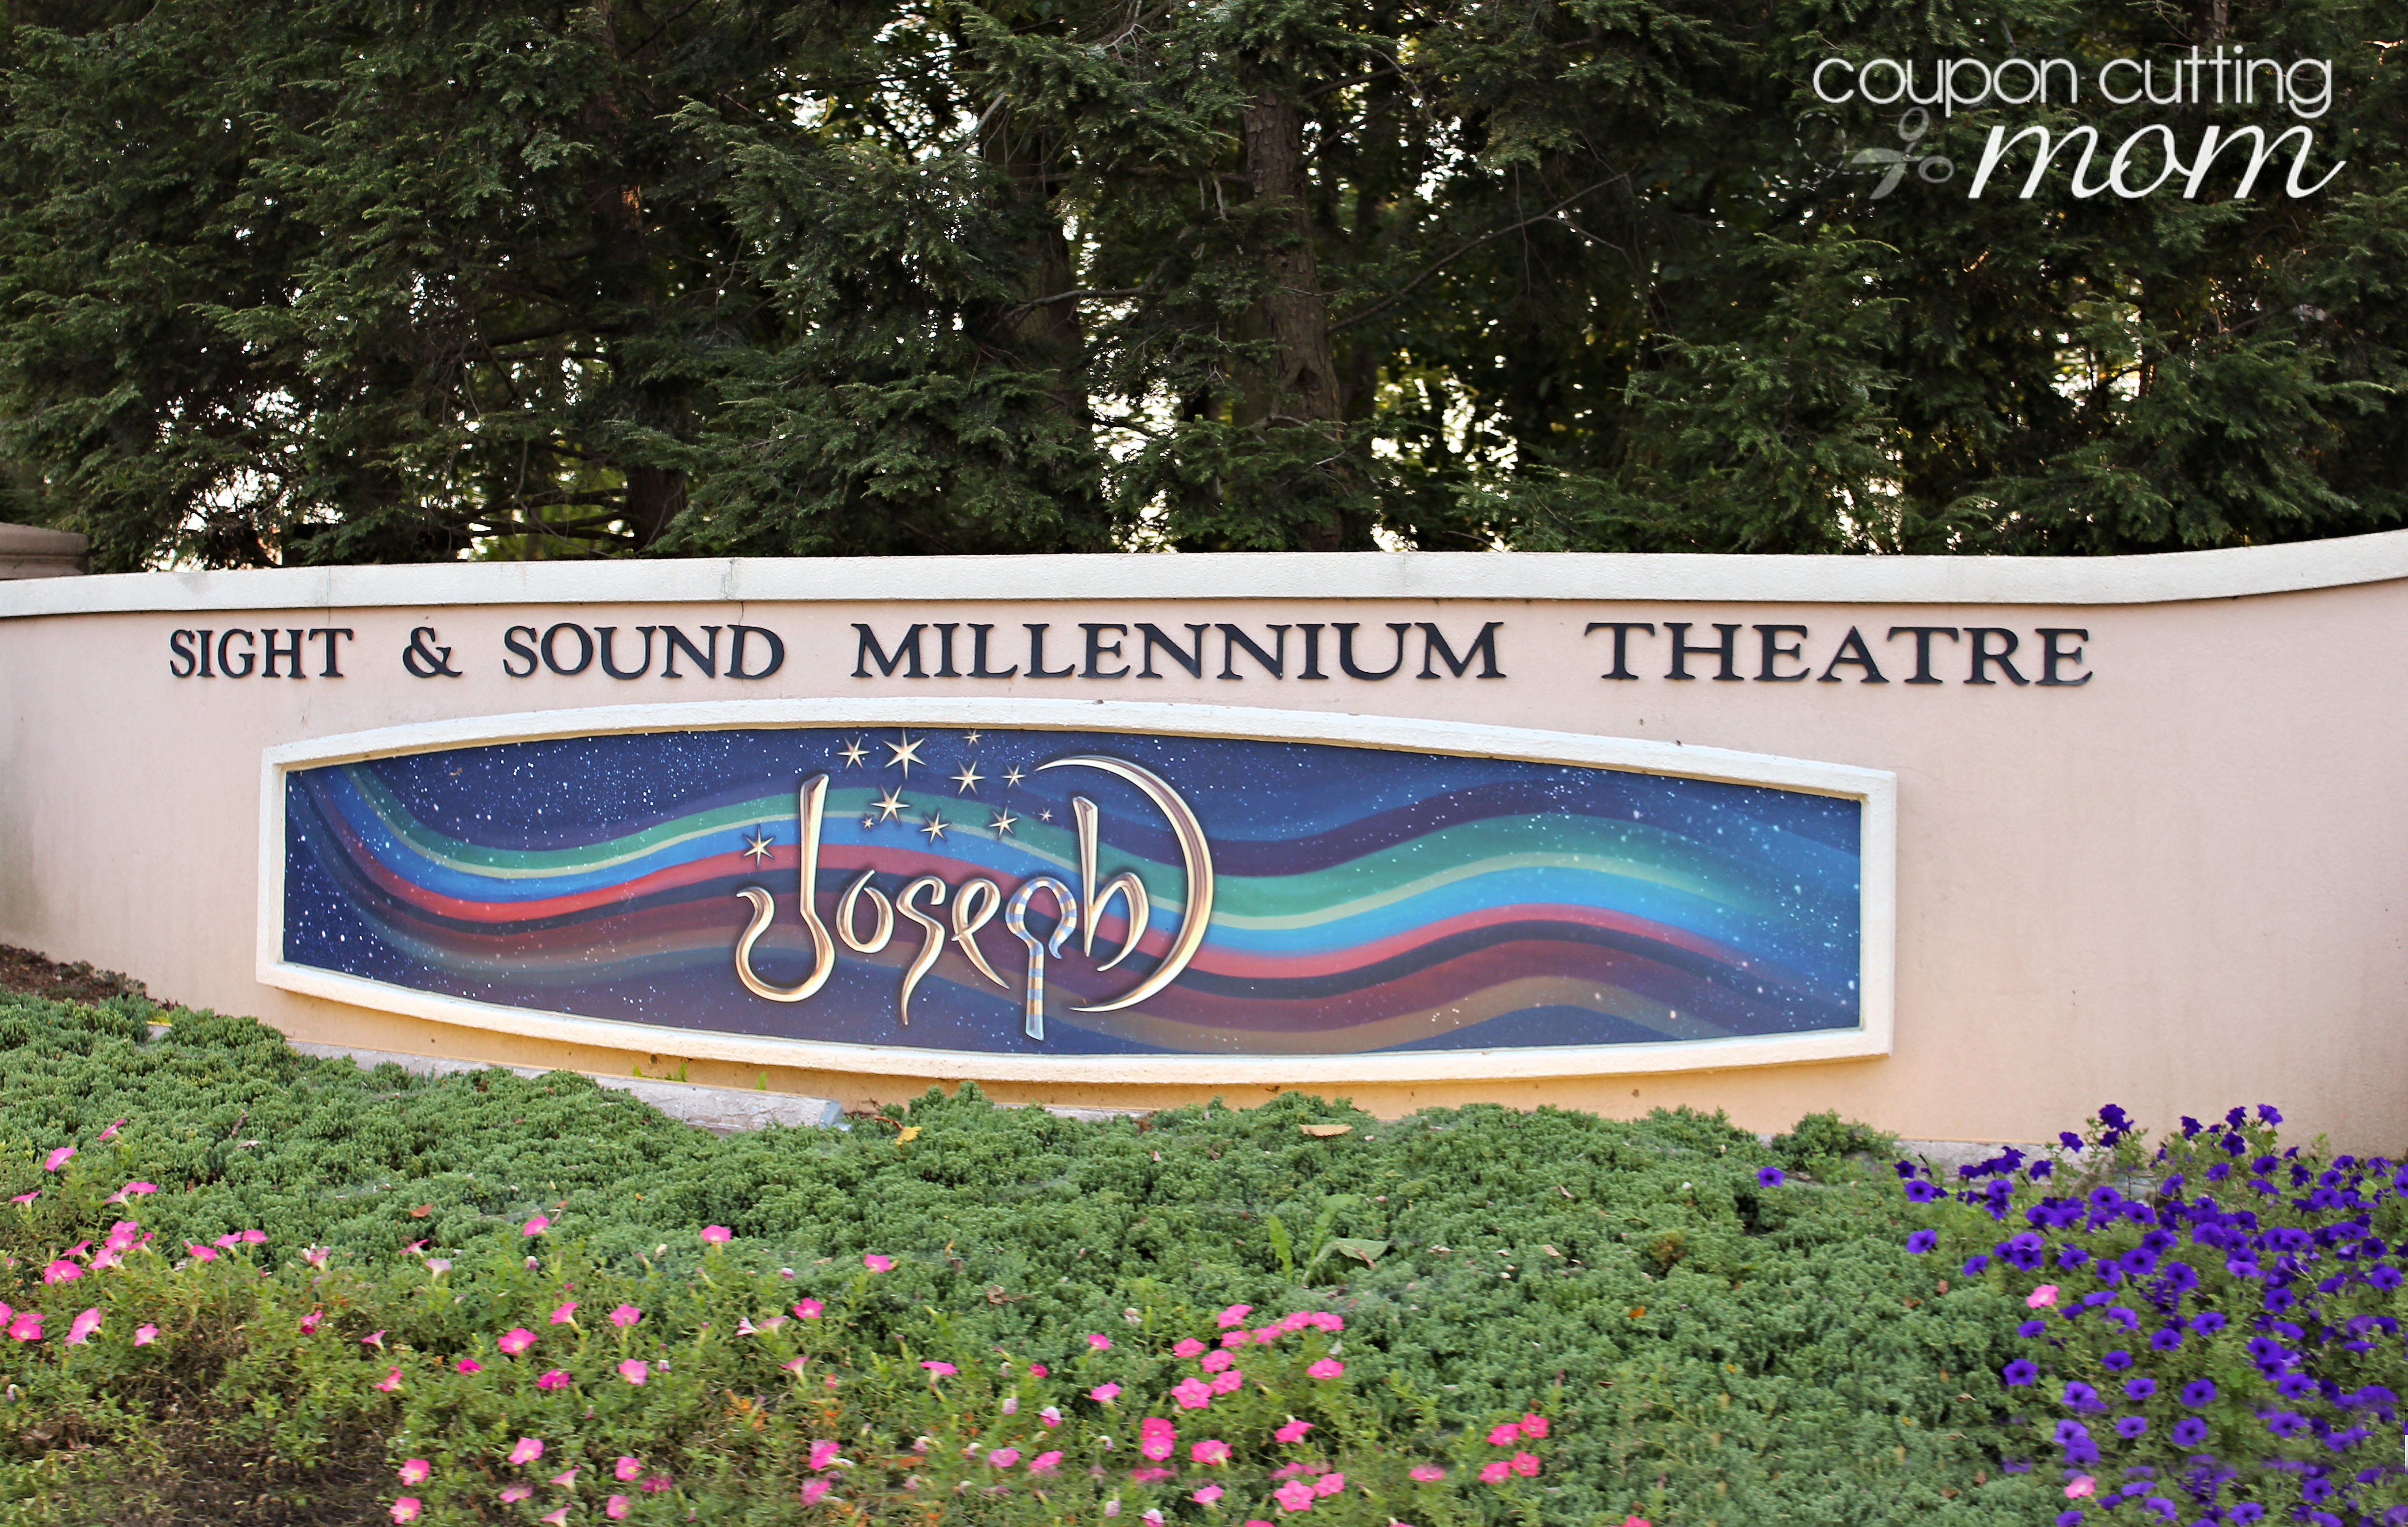 Sight and sound theater coupons